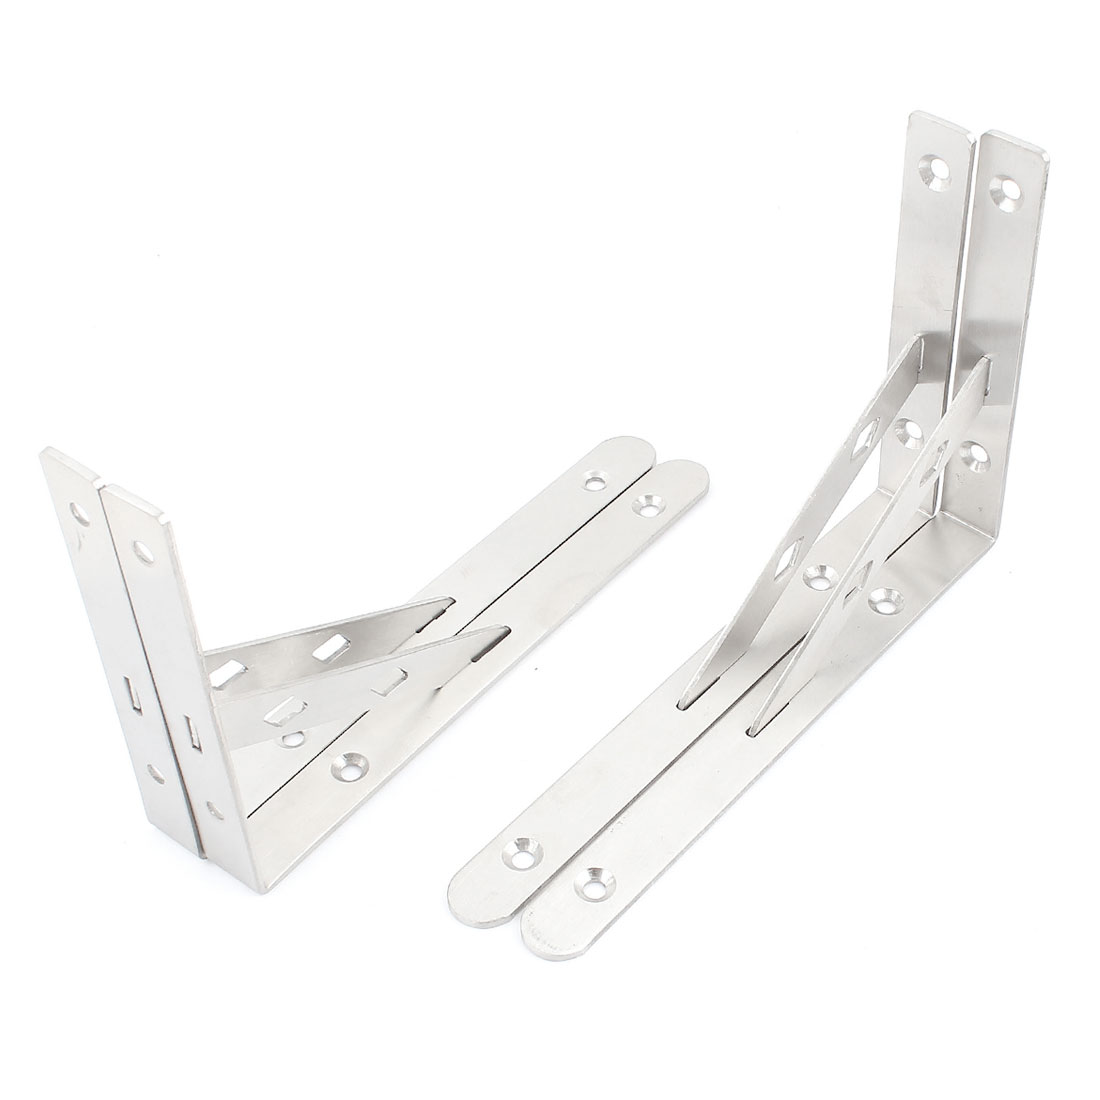 4 Pcs 90 Degree Wall Mount Support Shelf Bracket Frame 200mm x 135mm